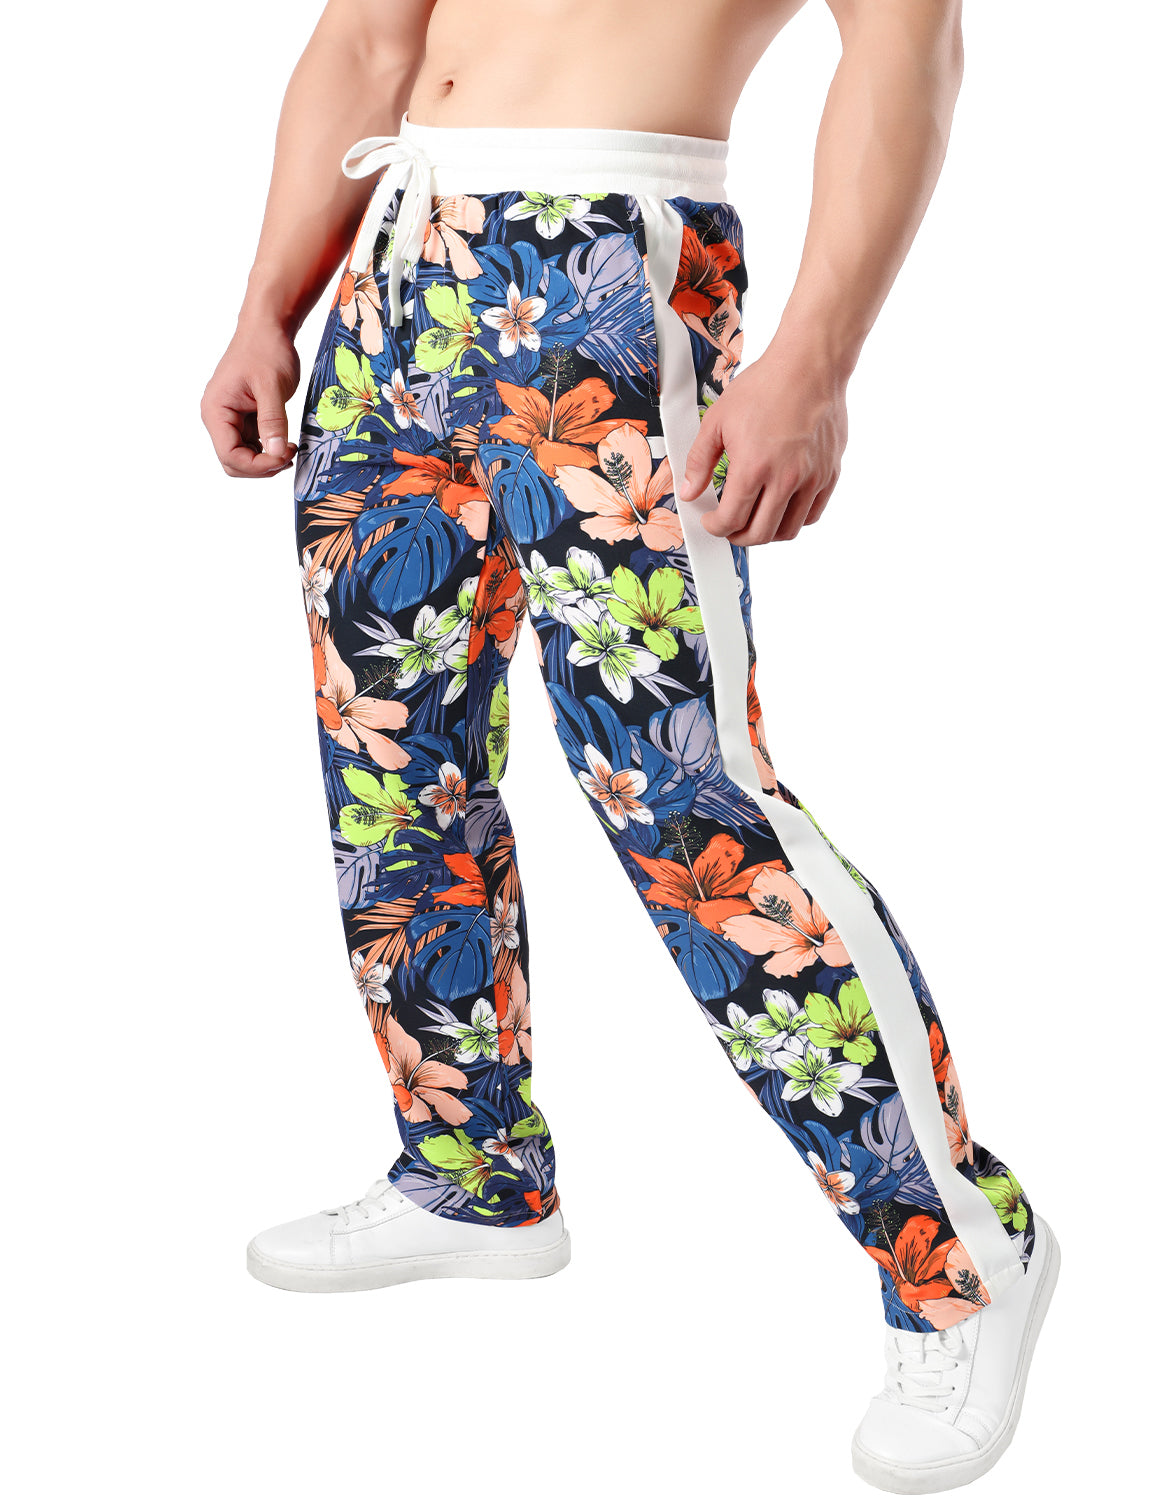 JOGAL Men's Casual Flower Prints Workout Sweatpants with Pockets